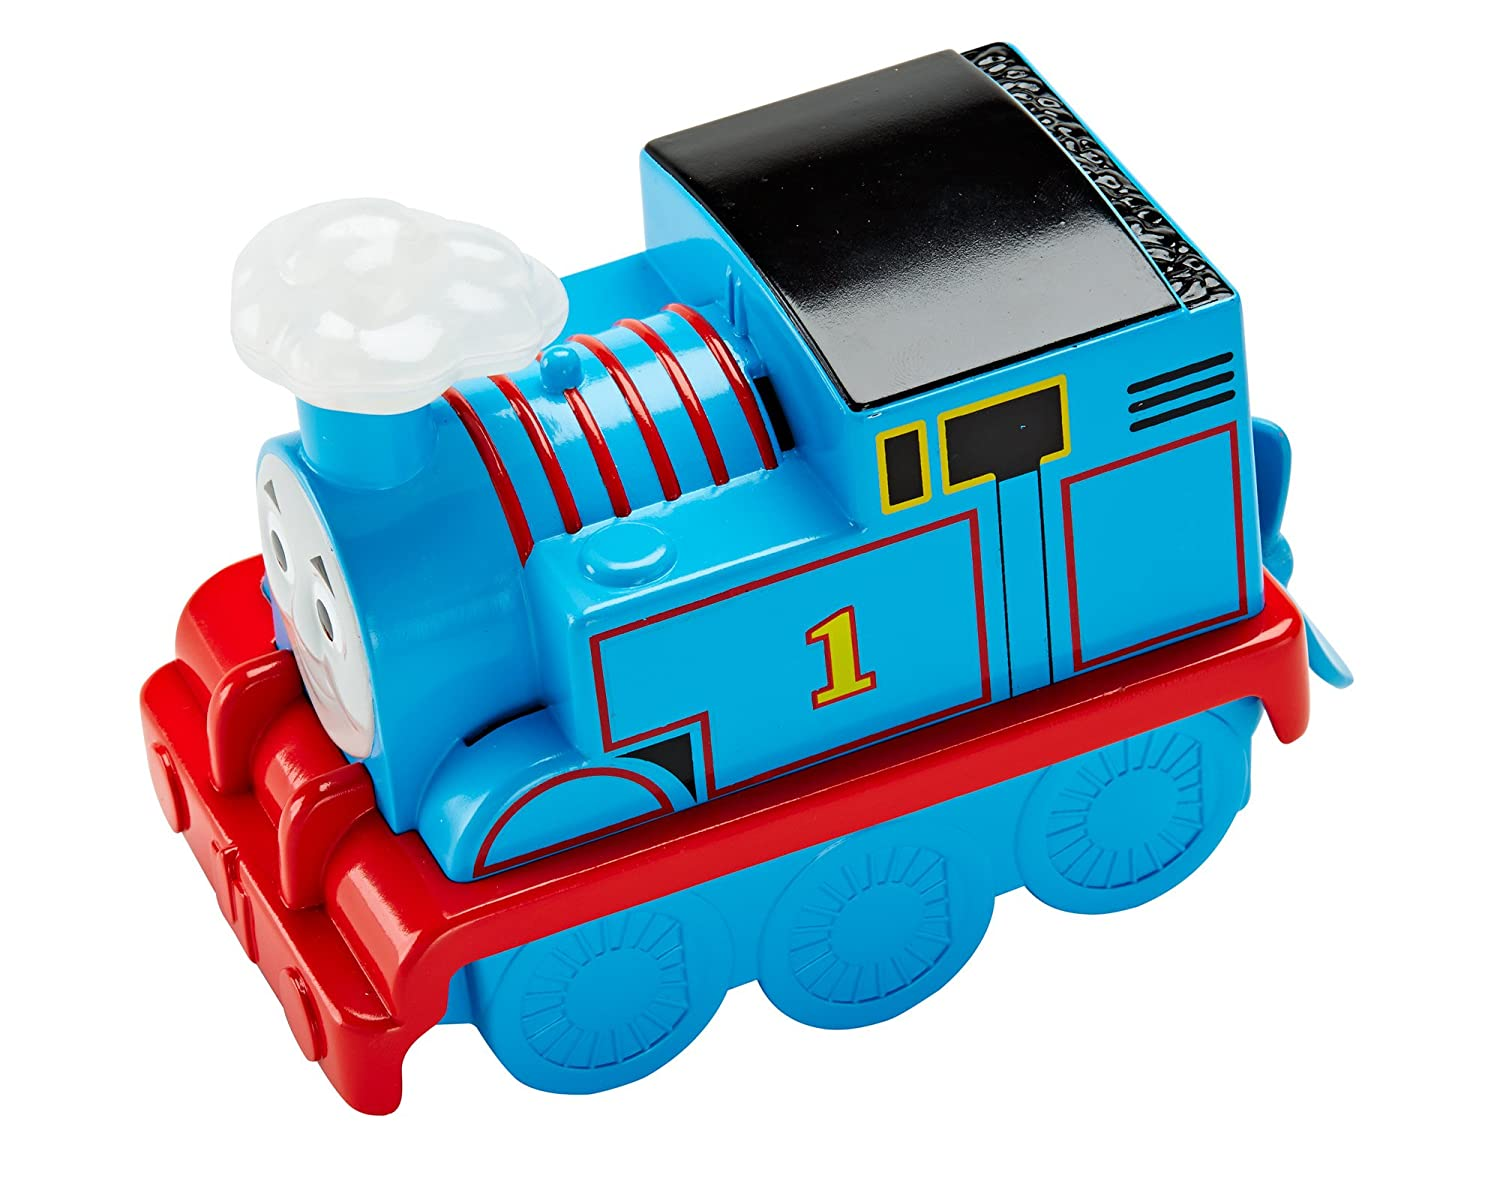 Amazon.com: Fisher-Price My First Thomas the Train Float & Go Thomas ...